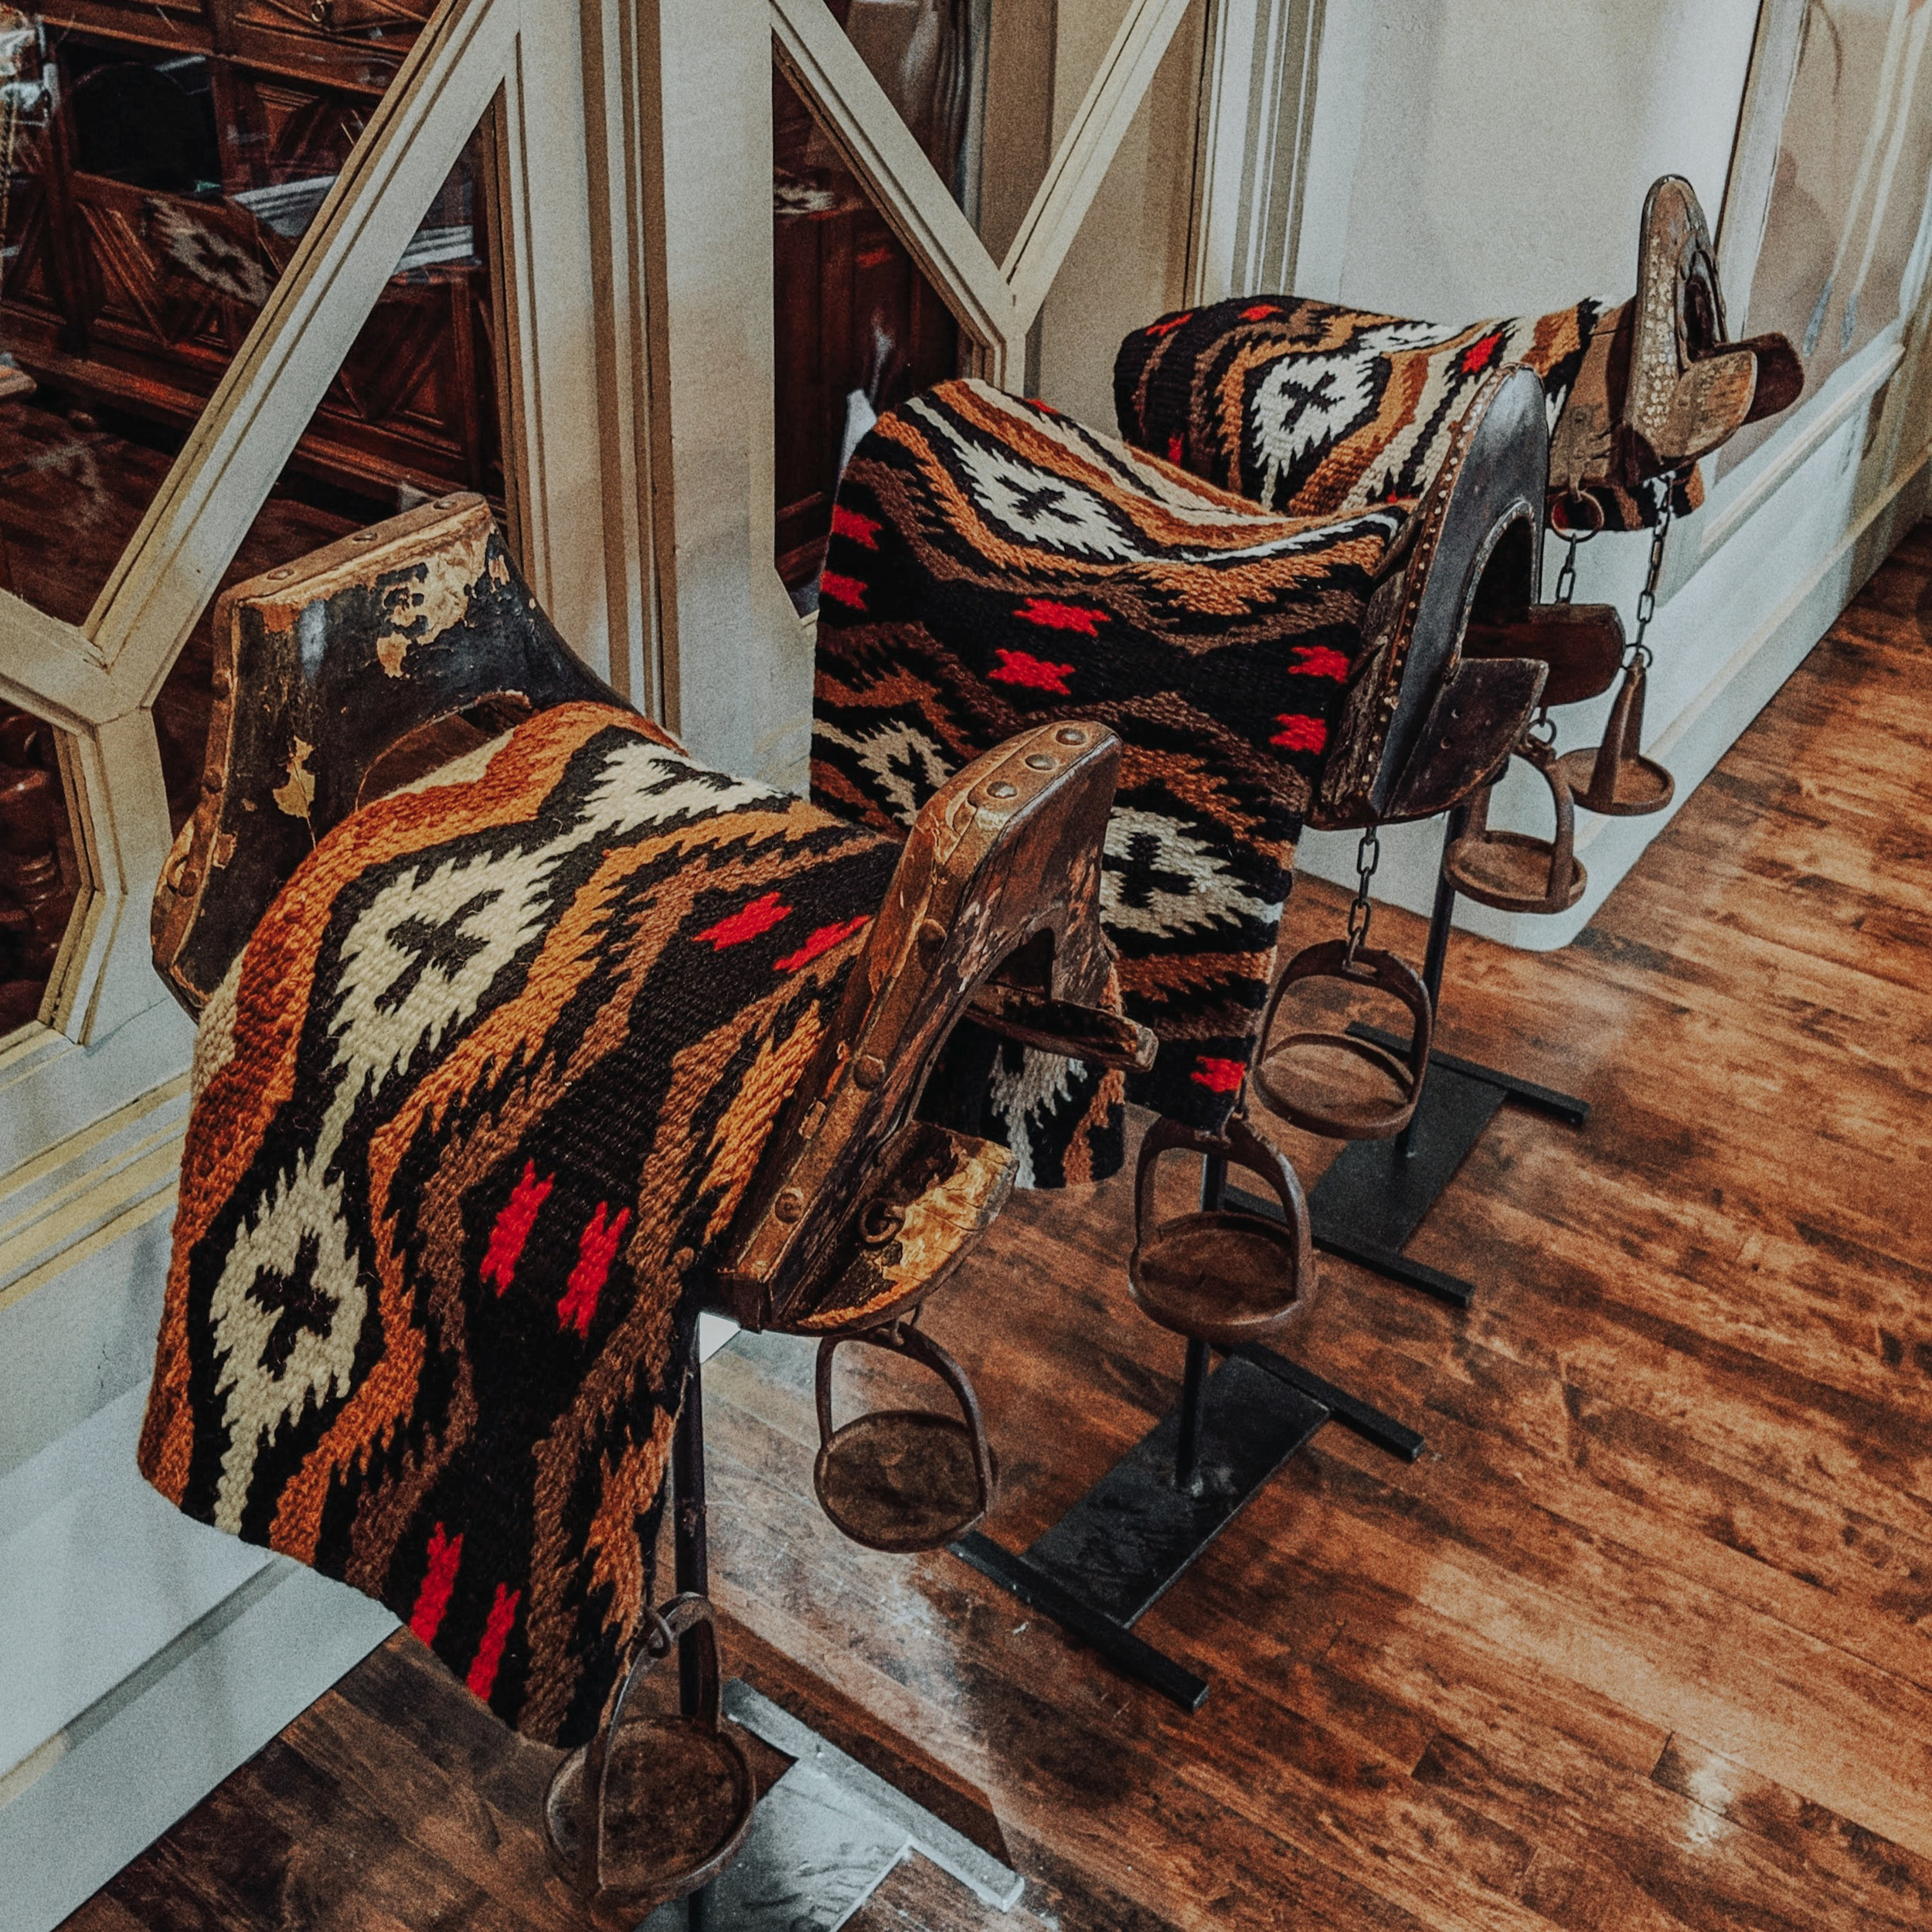 Beautifully preserved saddles once used for cattle ranching